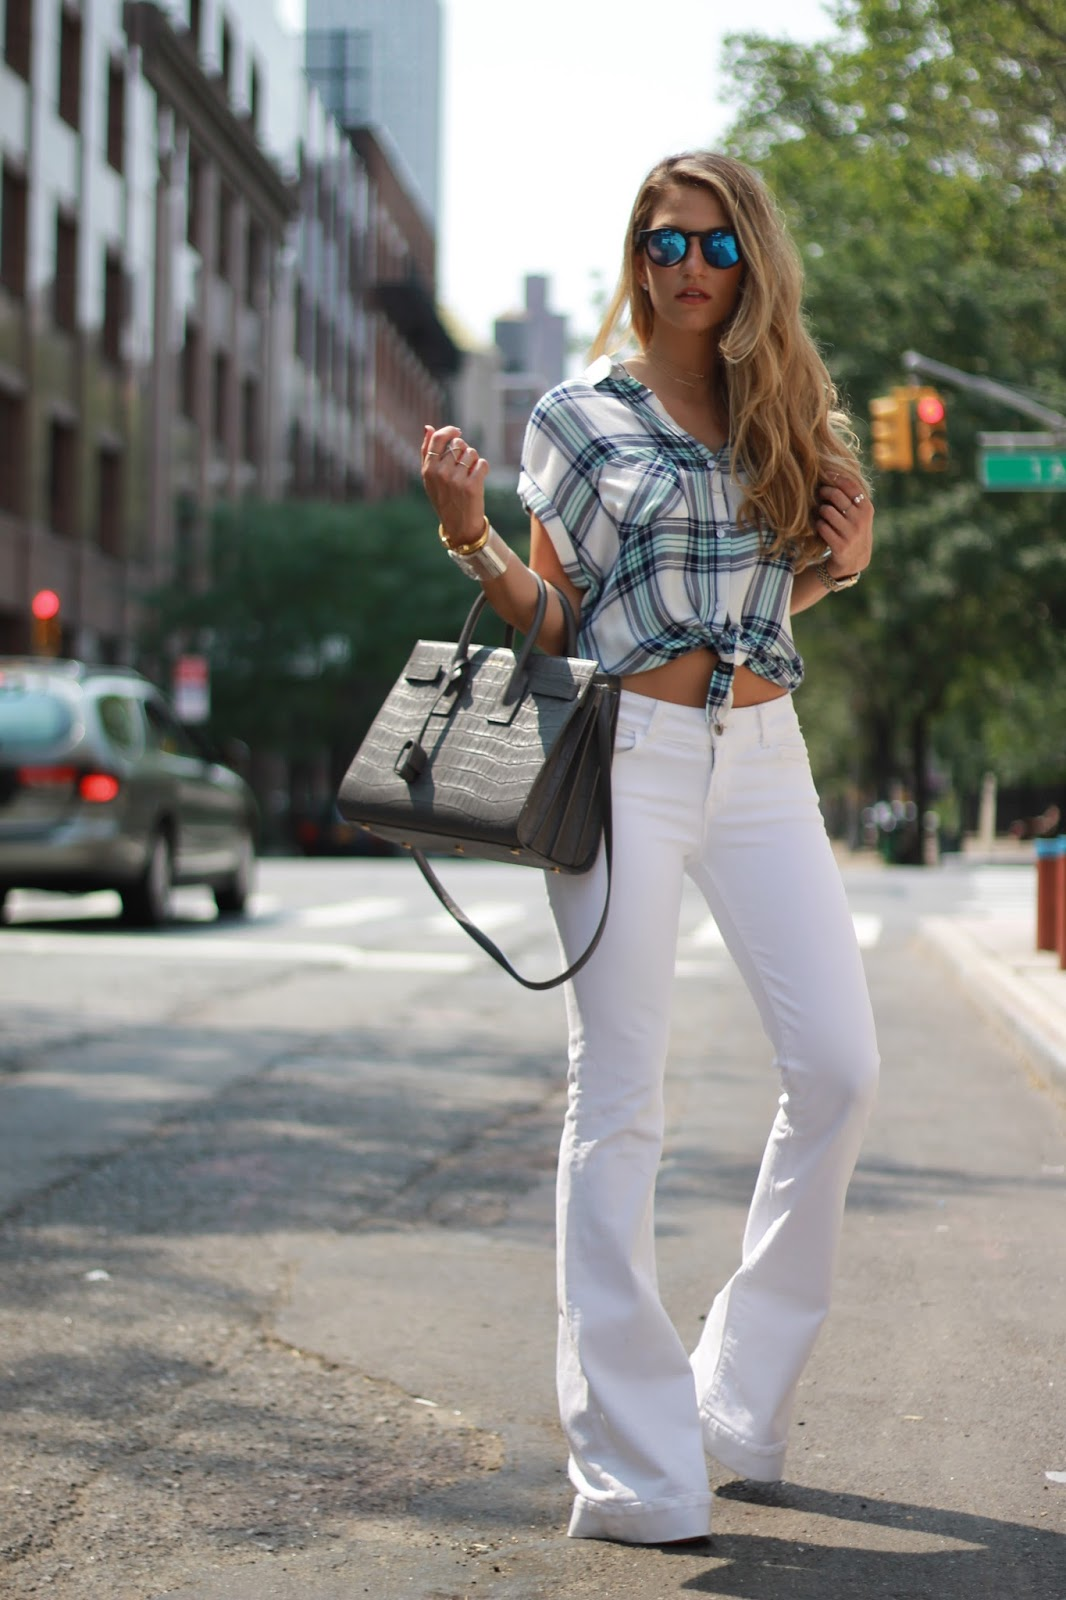 dressed for dreams in j brand flare jeans, rails shirt